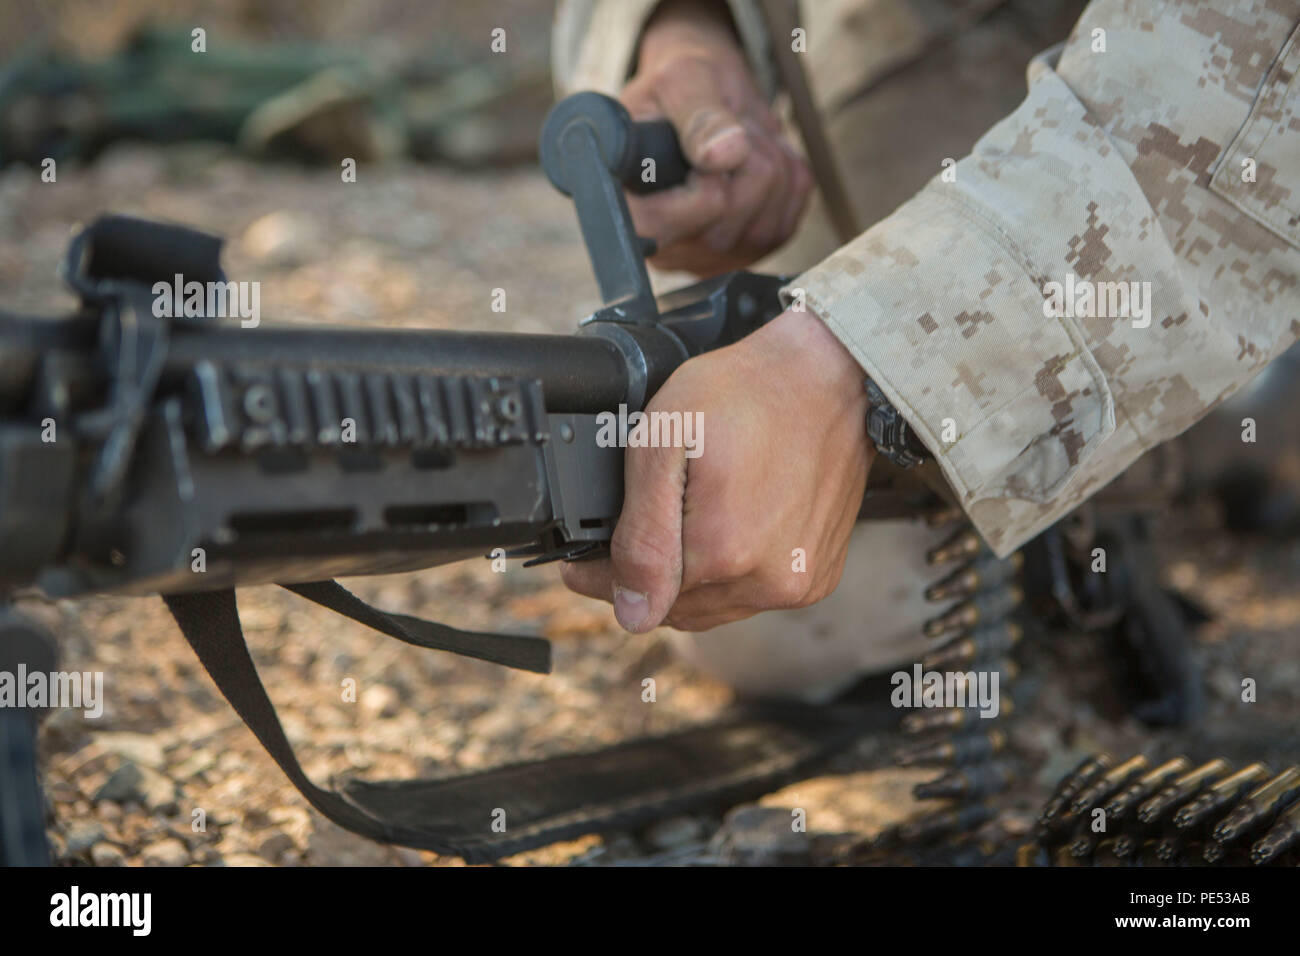 U.S. Marine Corps Lance Cpl. Ryan Fifer, with Marine Wing Support Squadron 374 (MWSS-374), changes the barrel for the M240B during an air ground defense exercise at Landing Zone Bull, Chocolate Mountain Aerial Gunnery Range, Calif., Oct. 10, 2015. This exercise was part of the Weapons and Tactics Instructor (WTI) 1-16, a seven week training event, hosted by Marine Aviation Weapons and Tactics Squadron One (MAWTS-1) cadre, which emphasizes operational integration of the six functions of Marine Corps aviation in support of a Marine Corps Air Ground Task Force. MAWTS-1 provides standardized advan - Stock Image